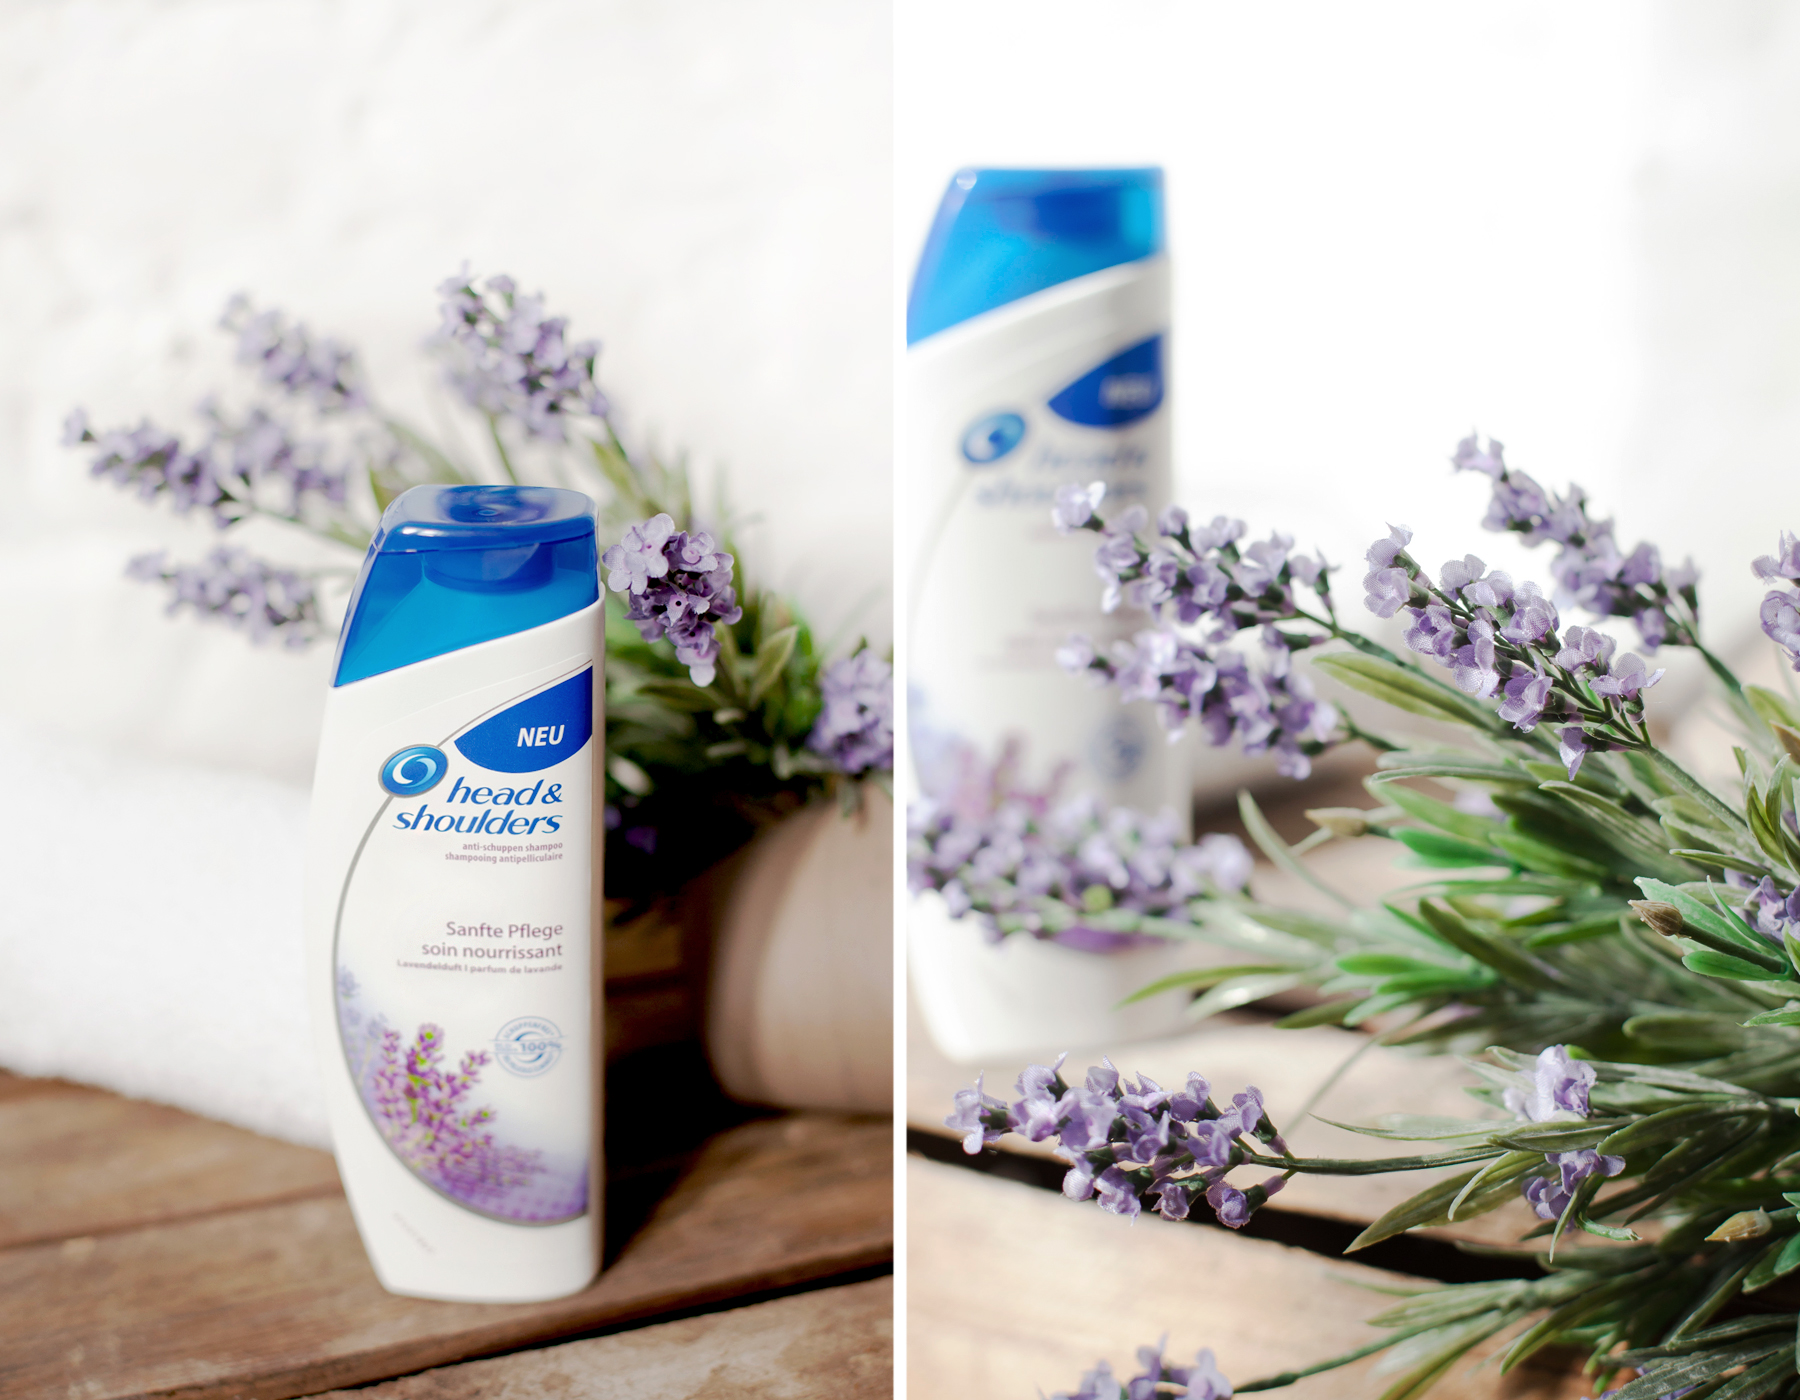 head & shoulders sanfte pflege lavendelduft lavendel lavender scent soin doux beauty beautyblogger product review haircare hair care antischuppen shampoo cats & dogs blog wie hund und katze ricarda schernus blogger düsseldorf berlin 5